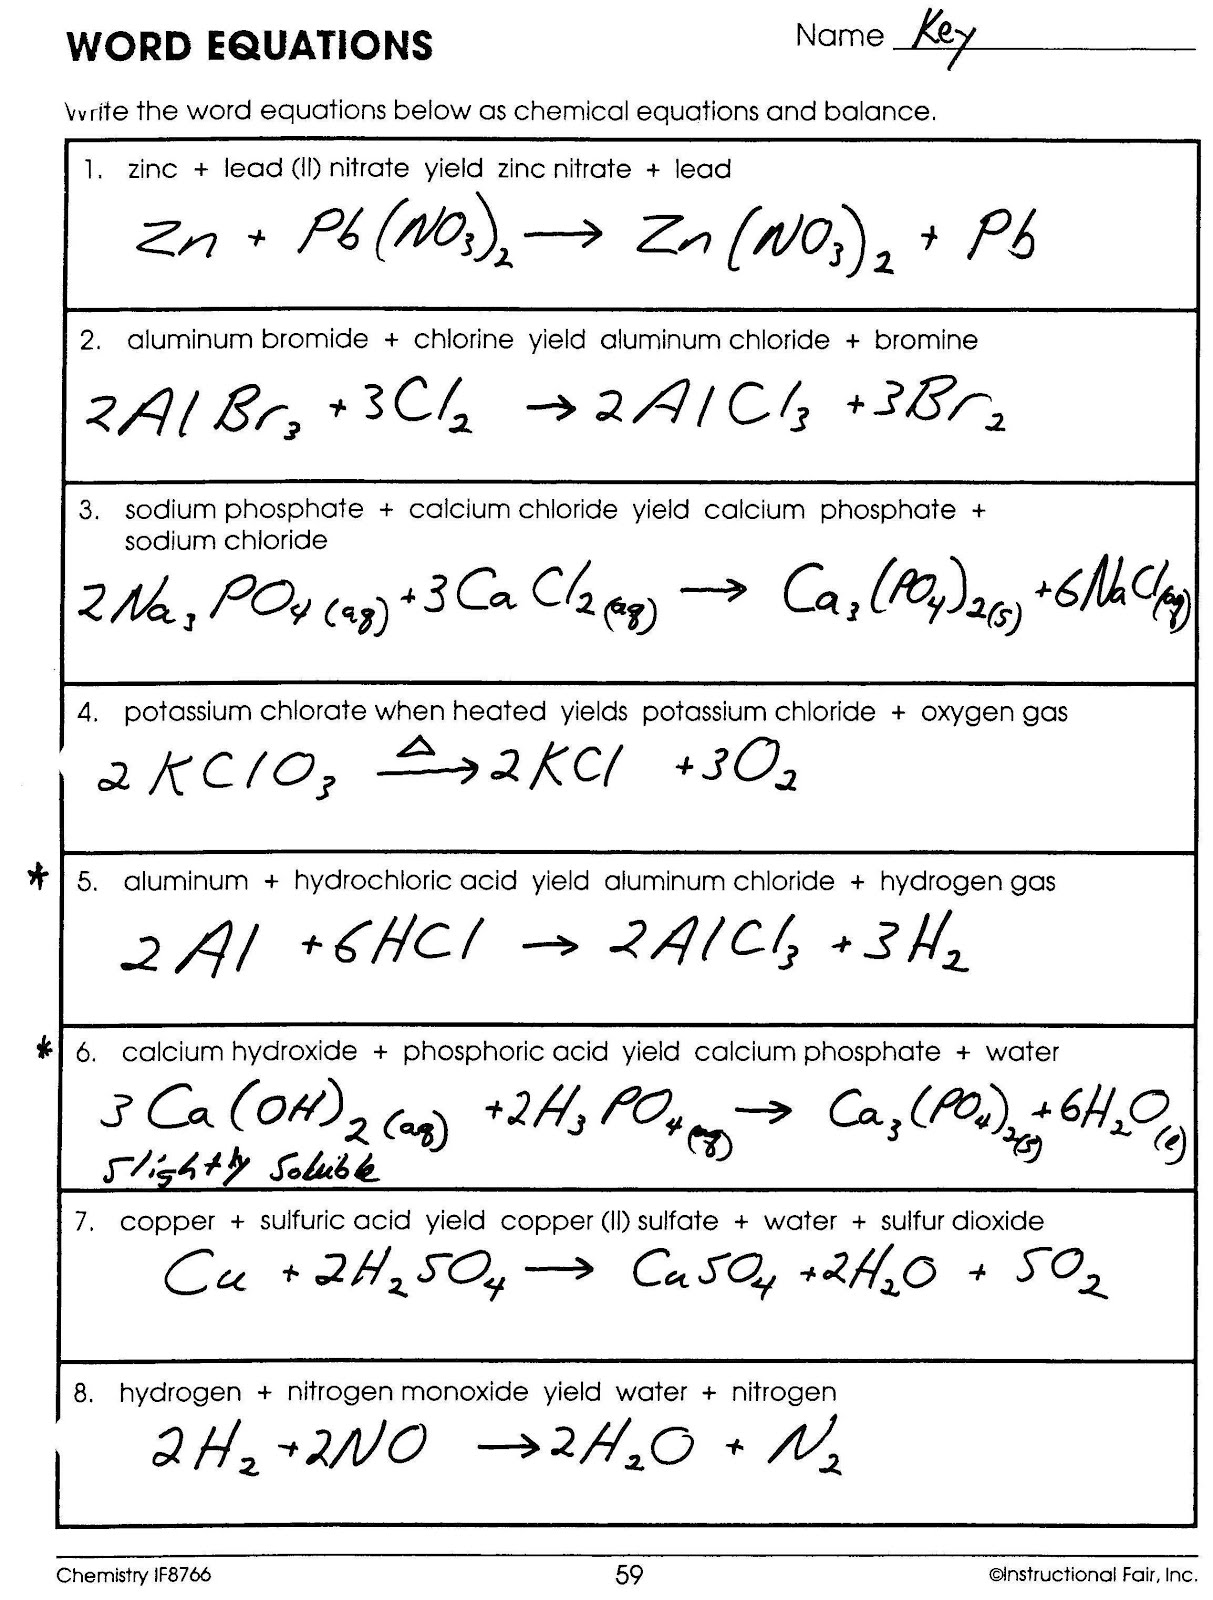 ... Chemistry Class - HHS - 2011-12: Key for Word Equations Worksheet